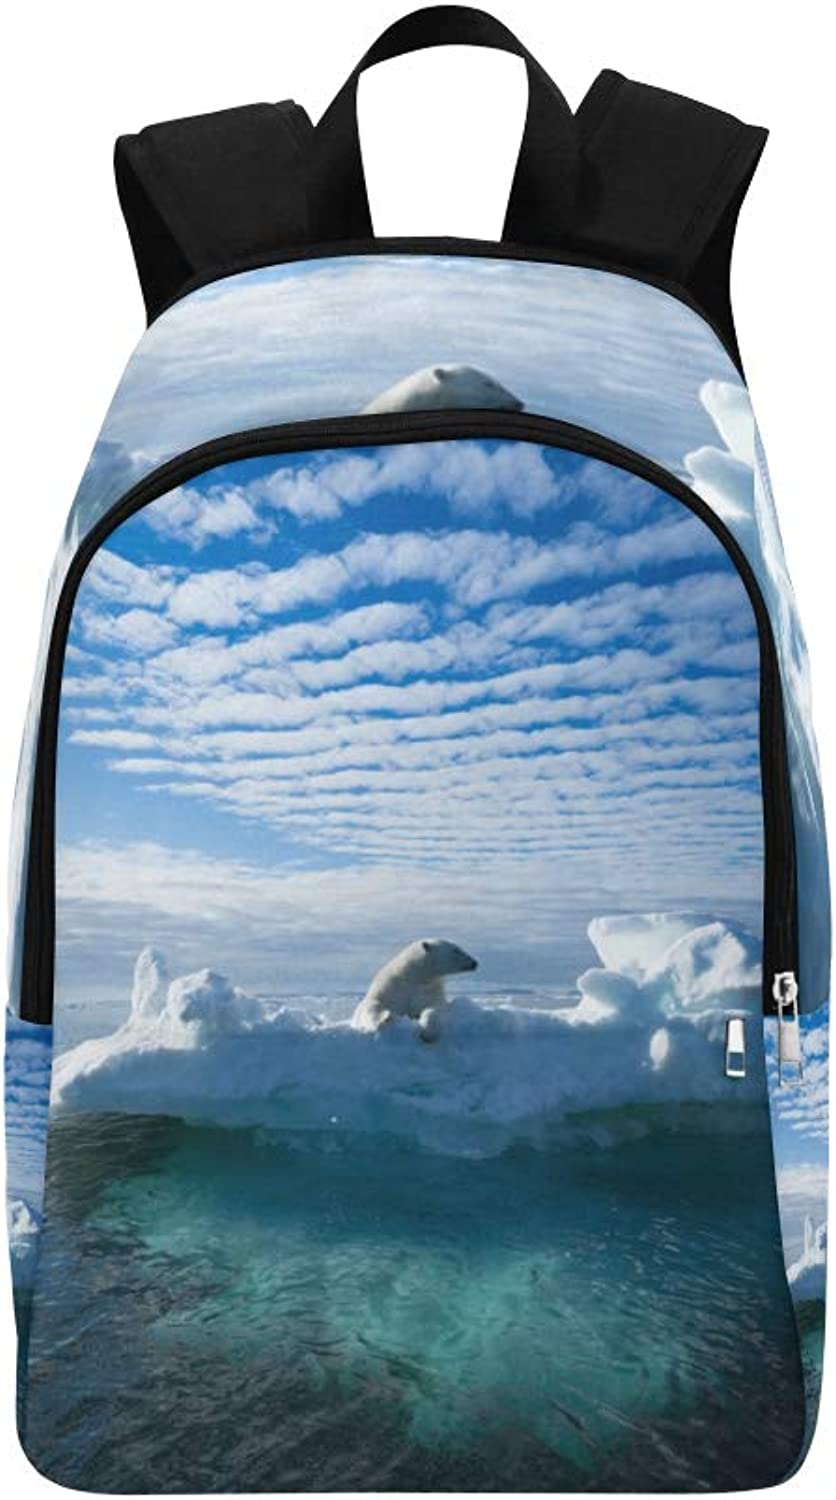 Cool Animal White Polar Bear Casual Daypack Travel Bag College School Backpack for Mens and Women